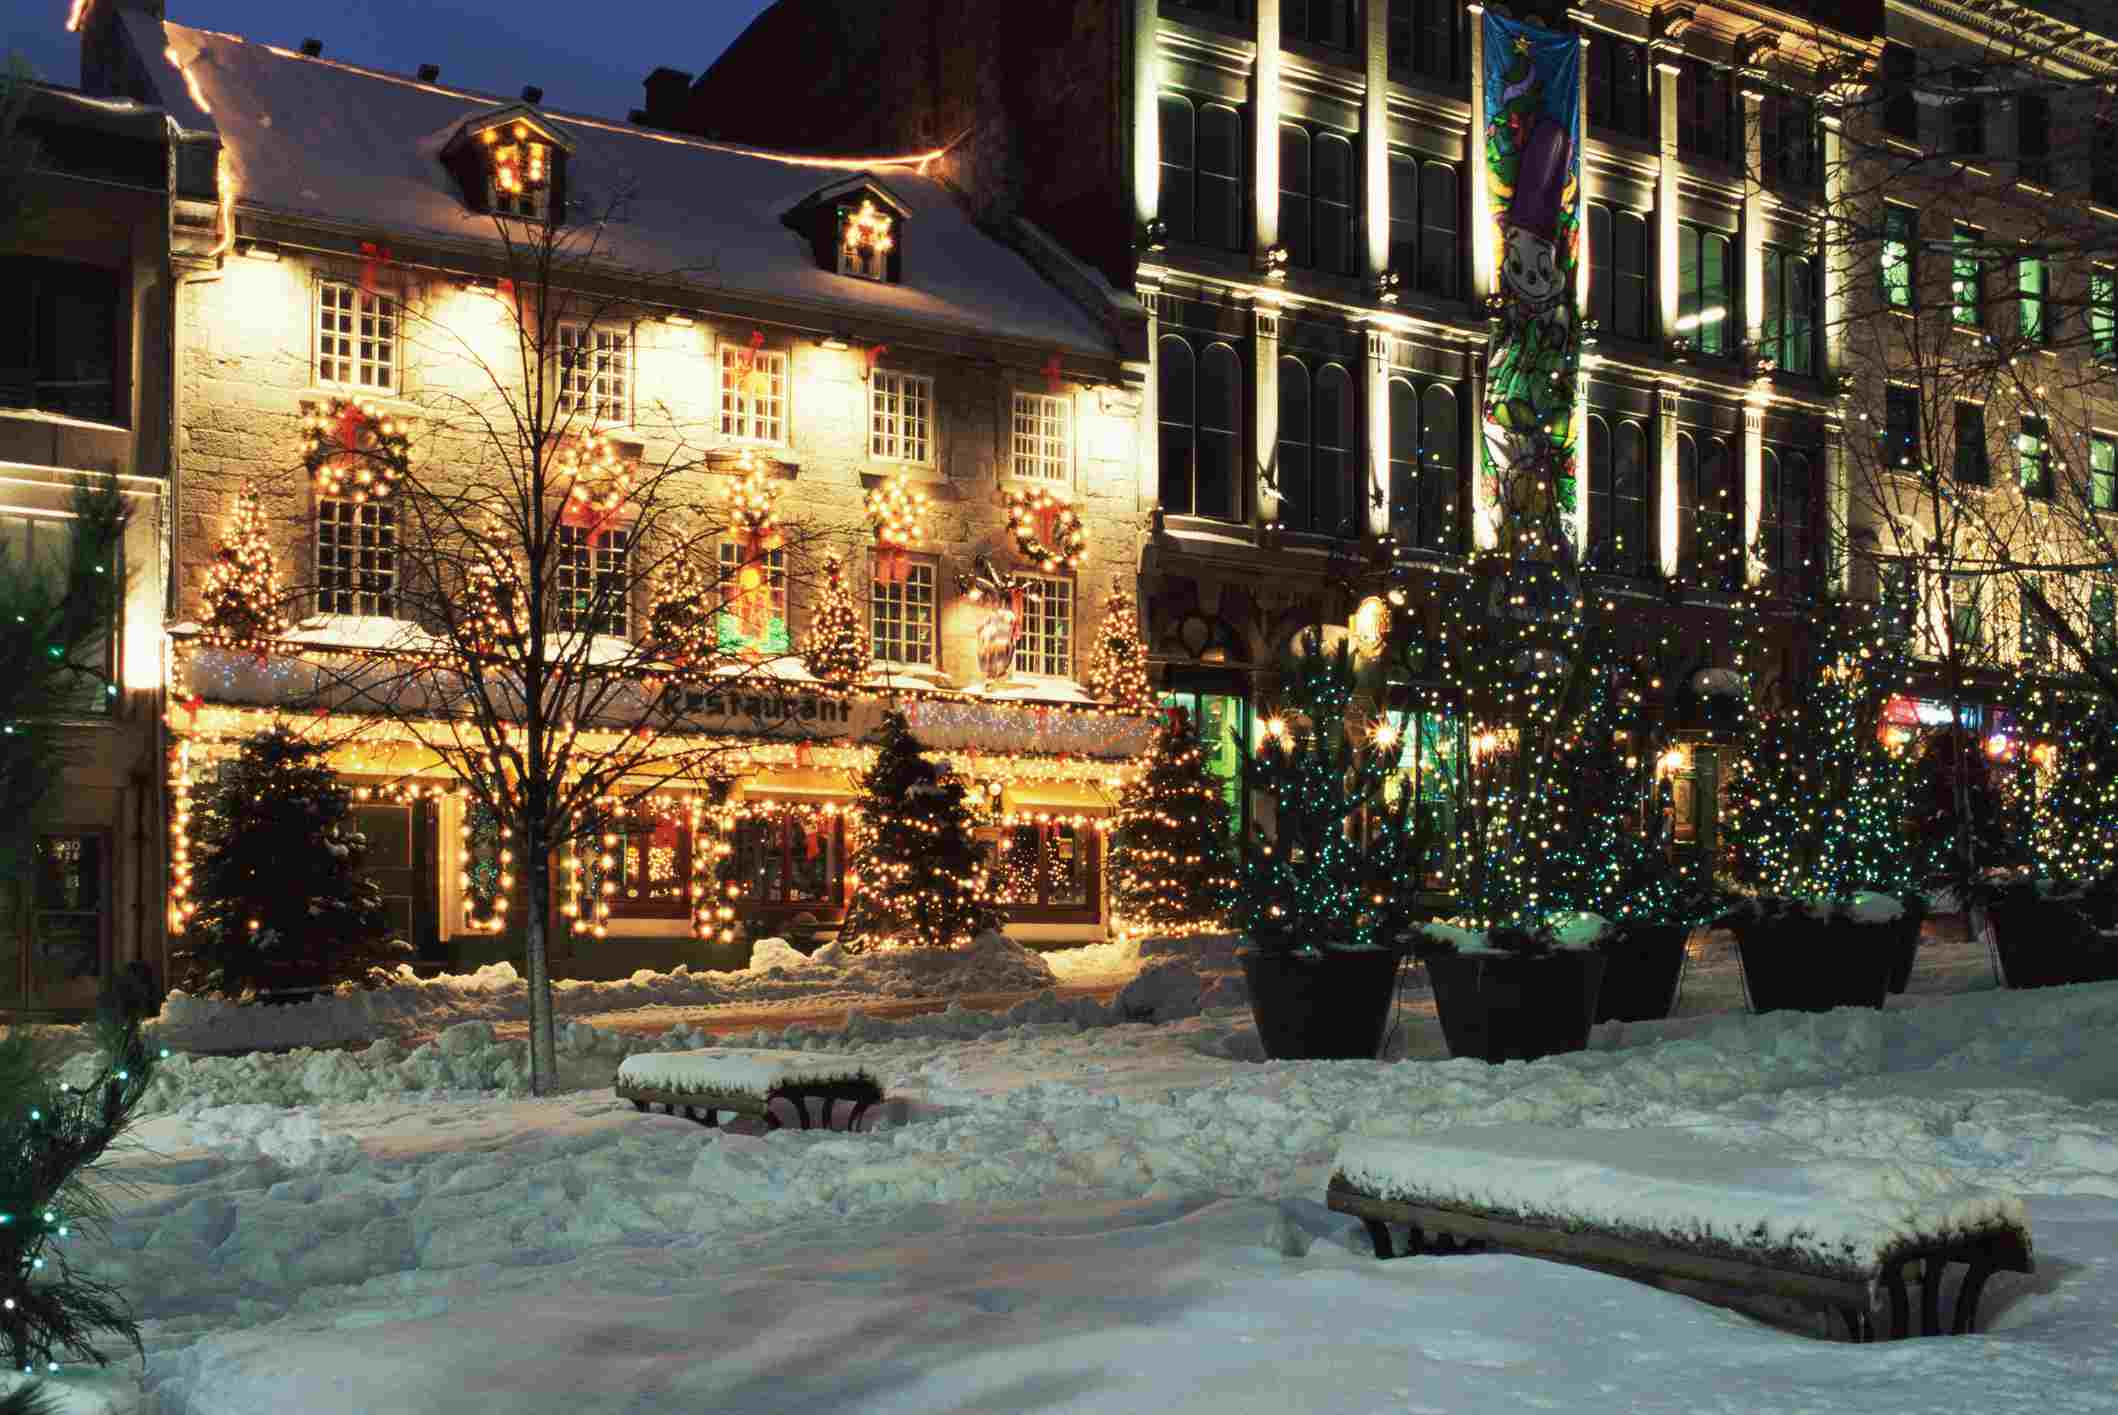 Old montreal street in winter